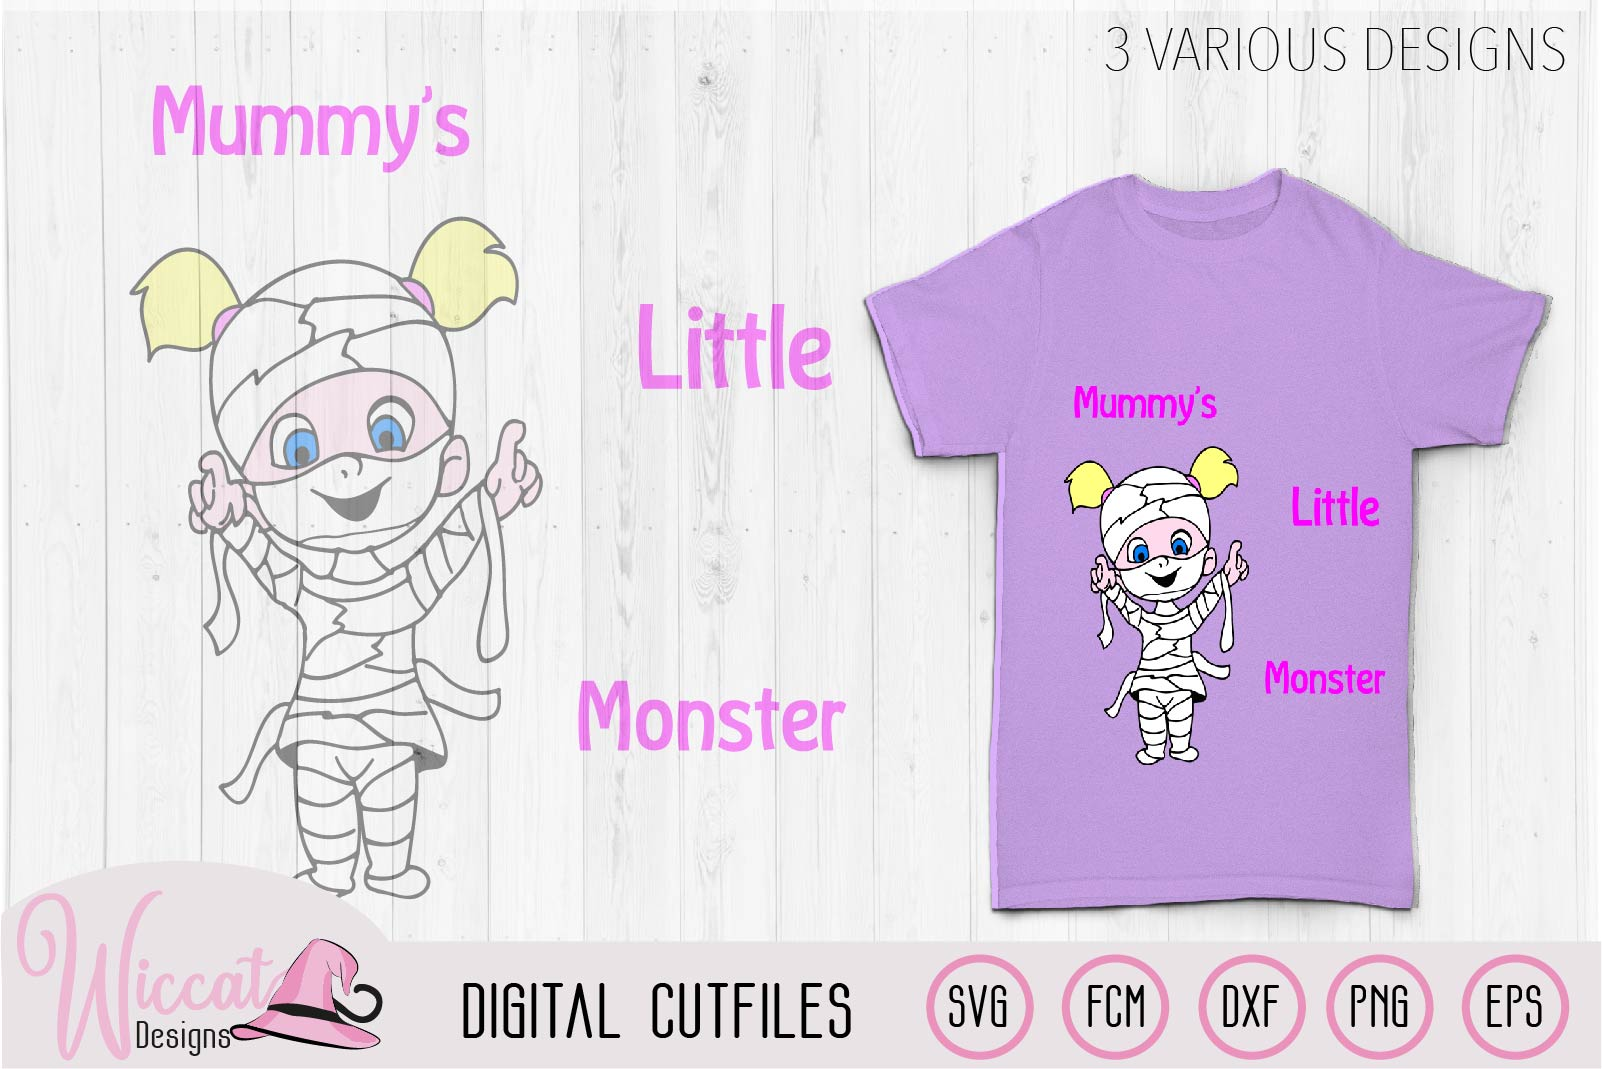 Mummies little monster svg cut file example image 3